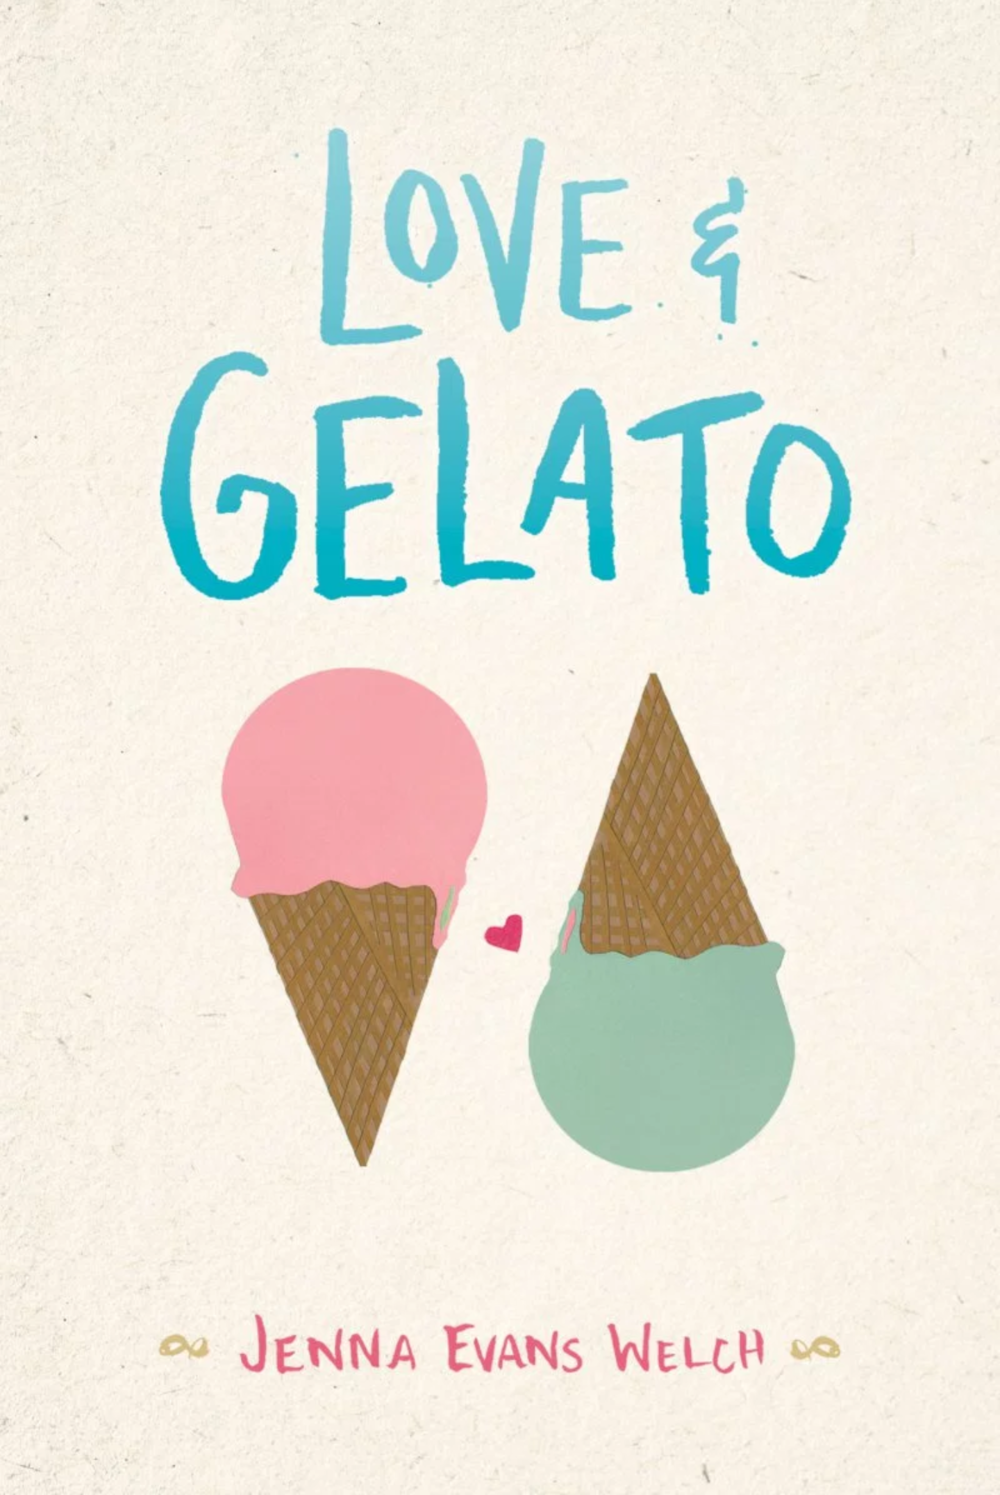 Love & Gelatoby Jenna Evans Welch PUBLISHED BY Simon Pulse, May 3, 2016 GENRES: Young Adult, Romance, Contemporary PAGES:400 FORMAT:Digital SOURCE:PURCHASED PACING: {4/5}